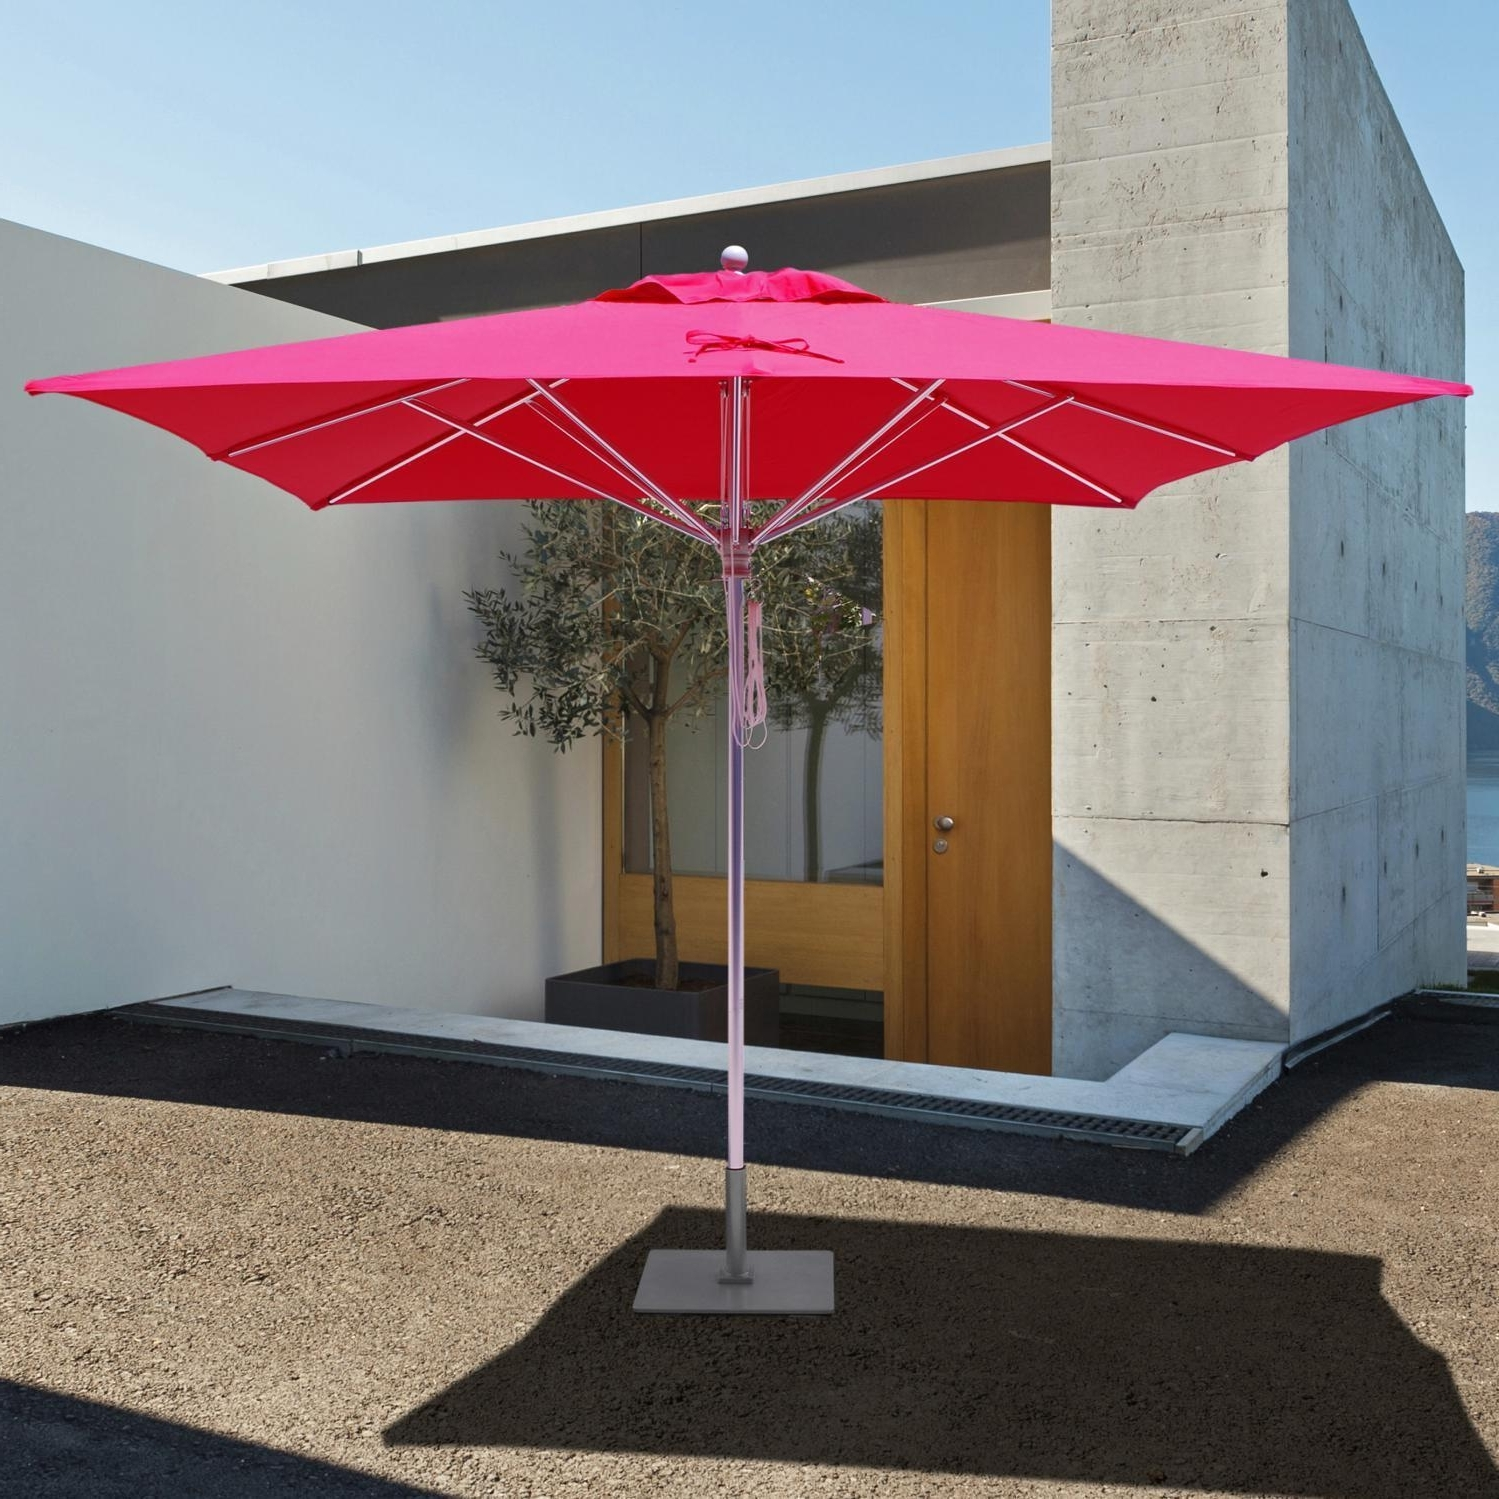 10 Ft Patio Umbrellas Within Most Current Galtech Sr Series 10 Ft Square Aluminum Commercial Patio Umbrella (View 3 of 20)